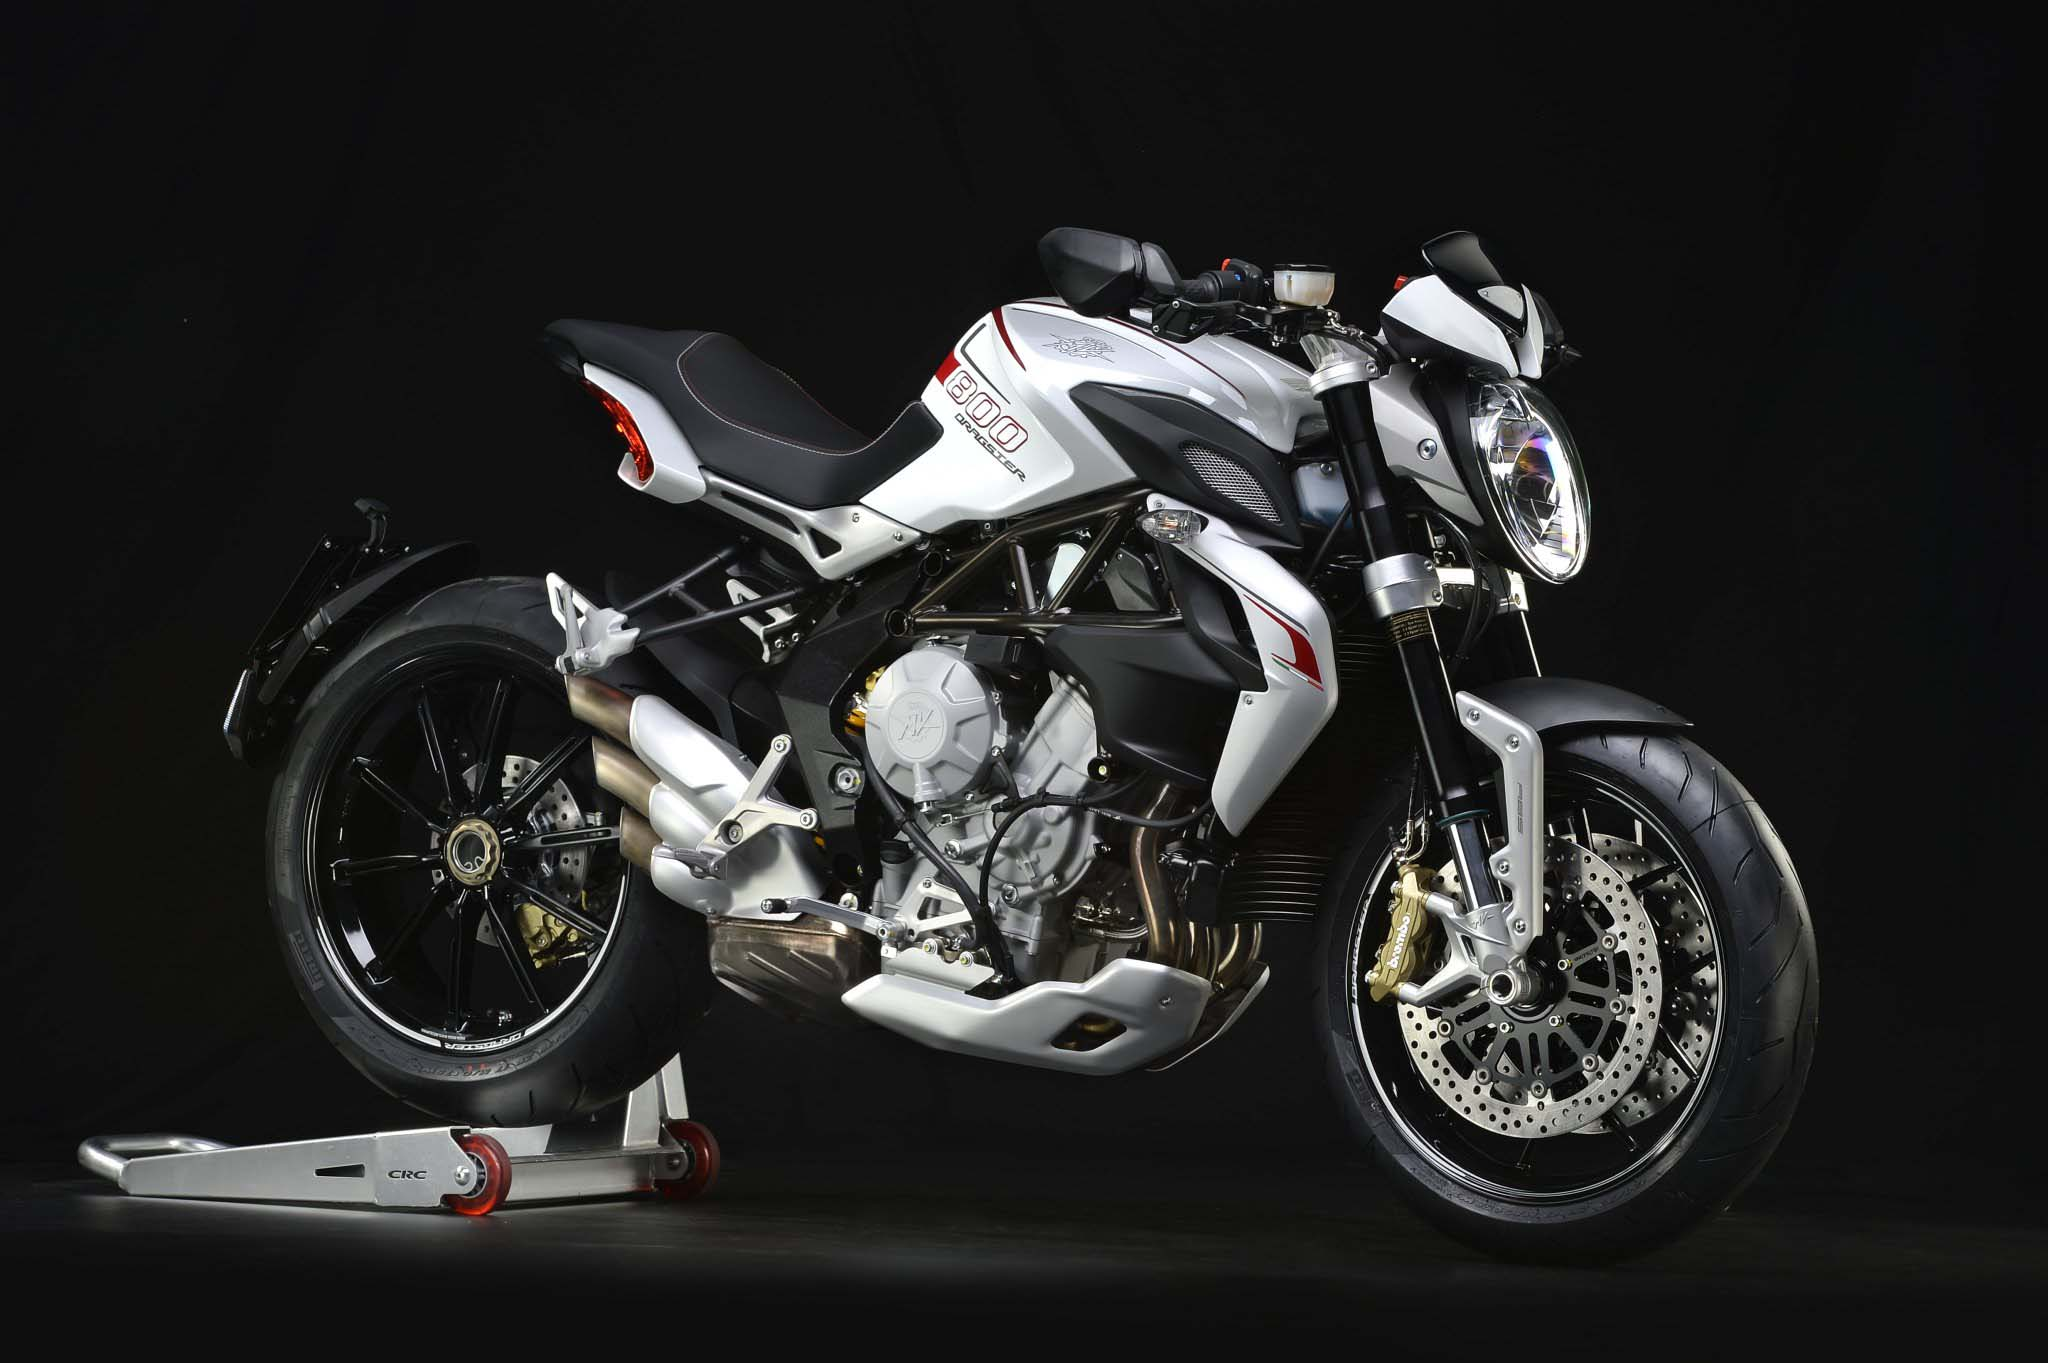 tech specs of the mv agusta brutale 800 dragster asphalt rubber. Black Bedroom Furniture Sets. Home Design Ideas